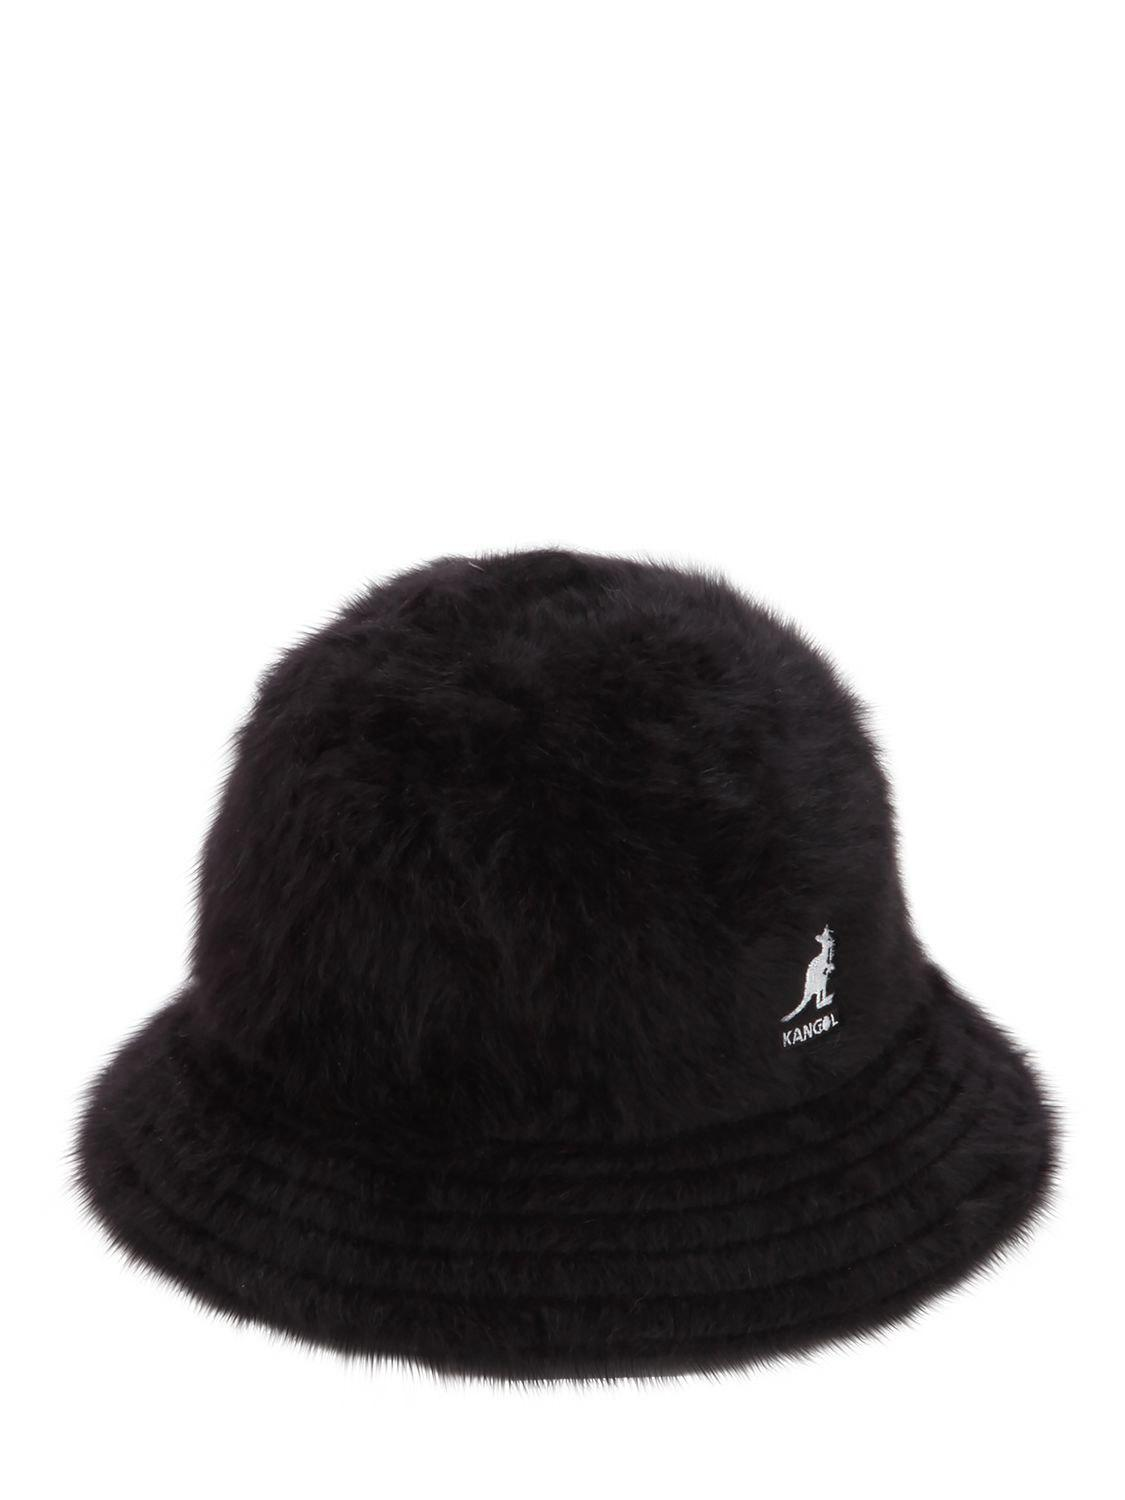 a0f699500 Kangol Furgora Casual Angora Blend Bucket Hat in Black - Lyst